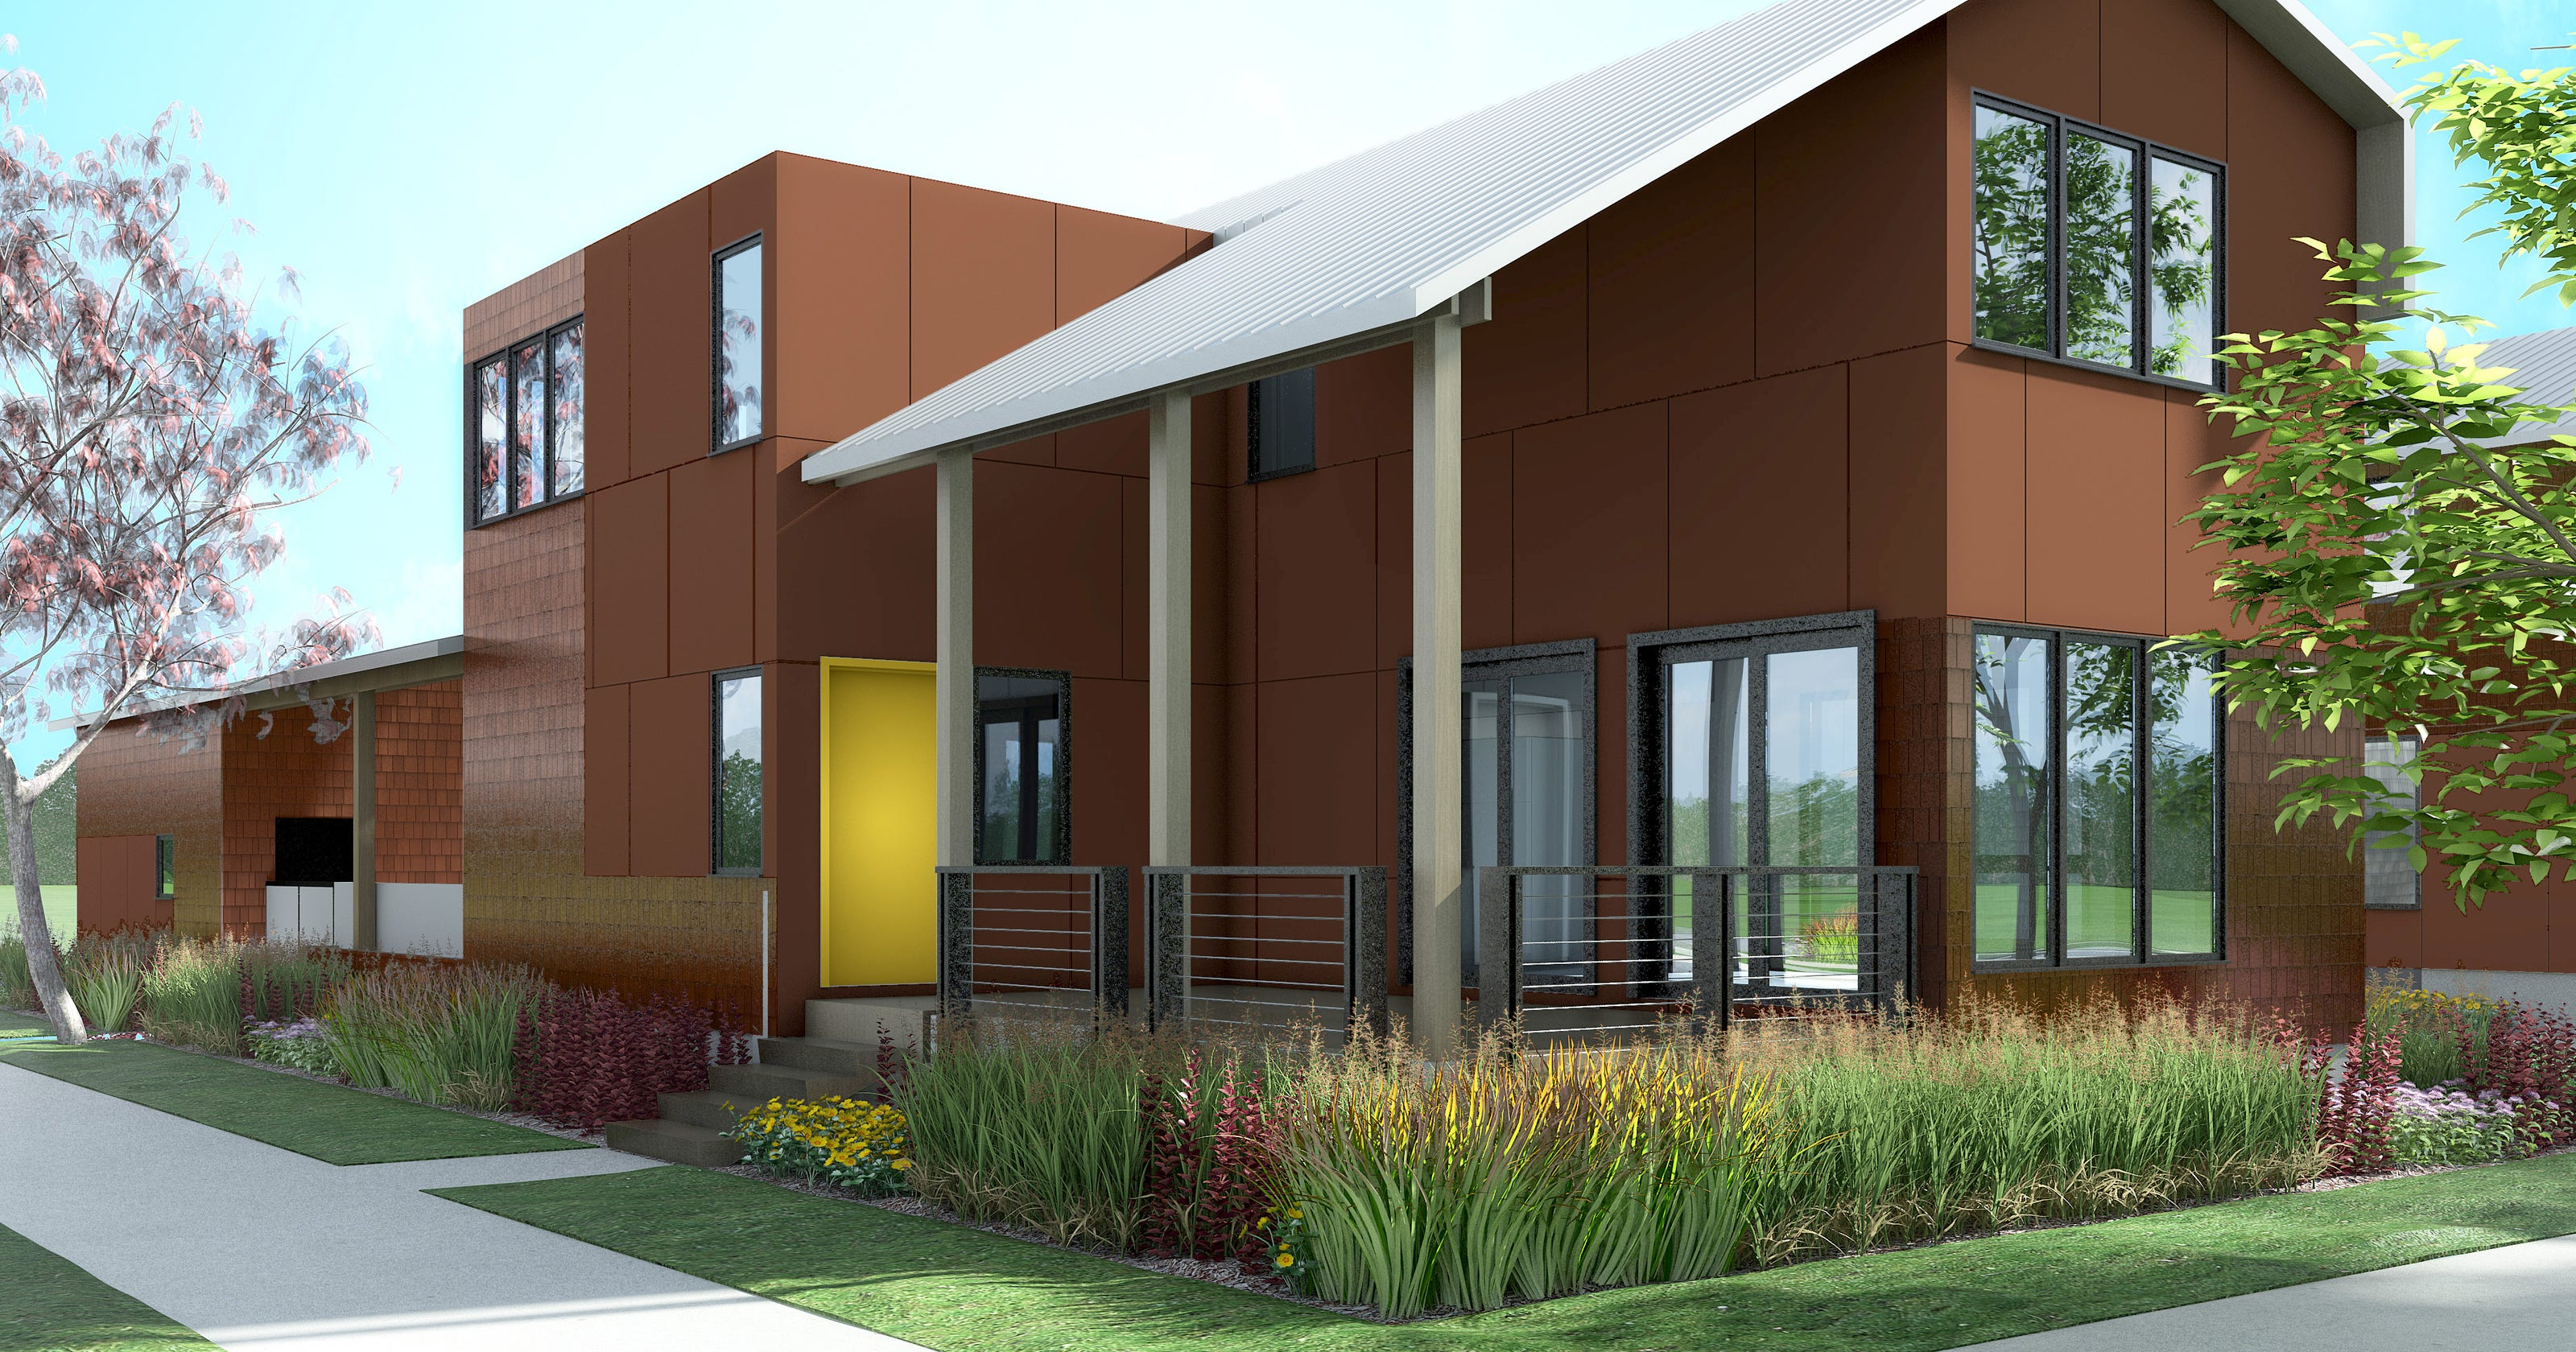 Eco homes adds single family homes in midtown detroit for Eco house builders